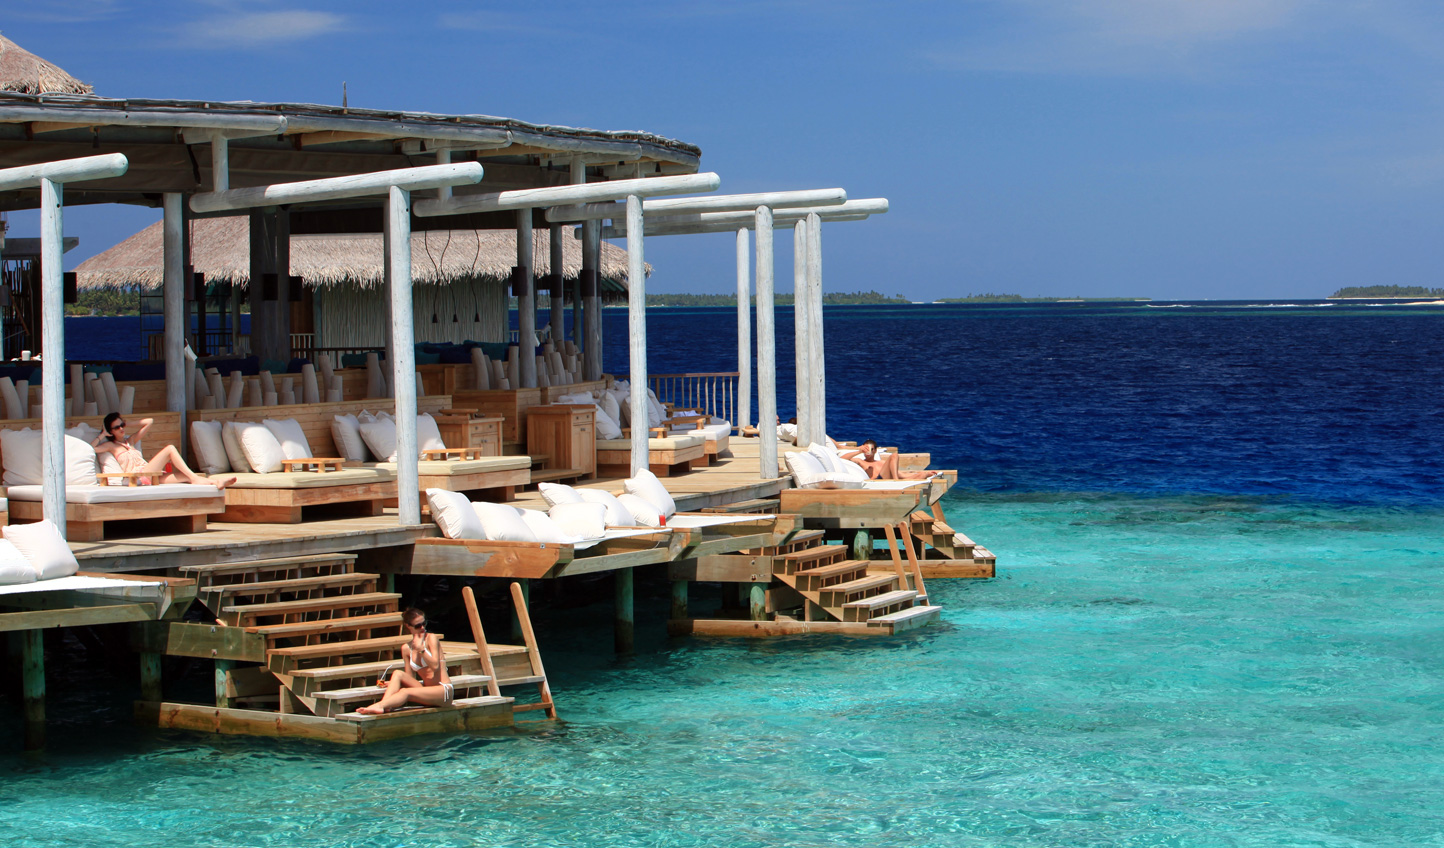 Relax at Chill Bar before diving in and exploring the house reef